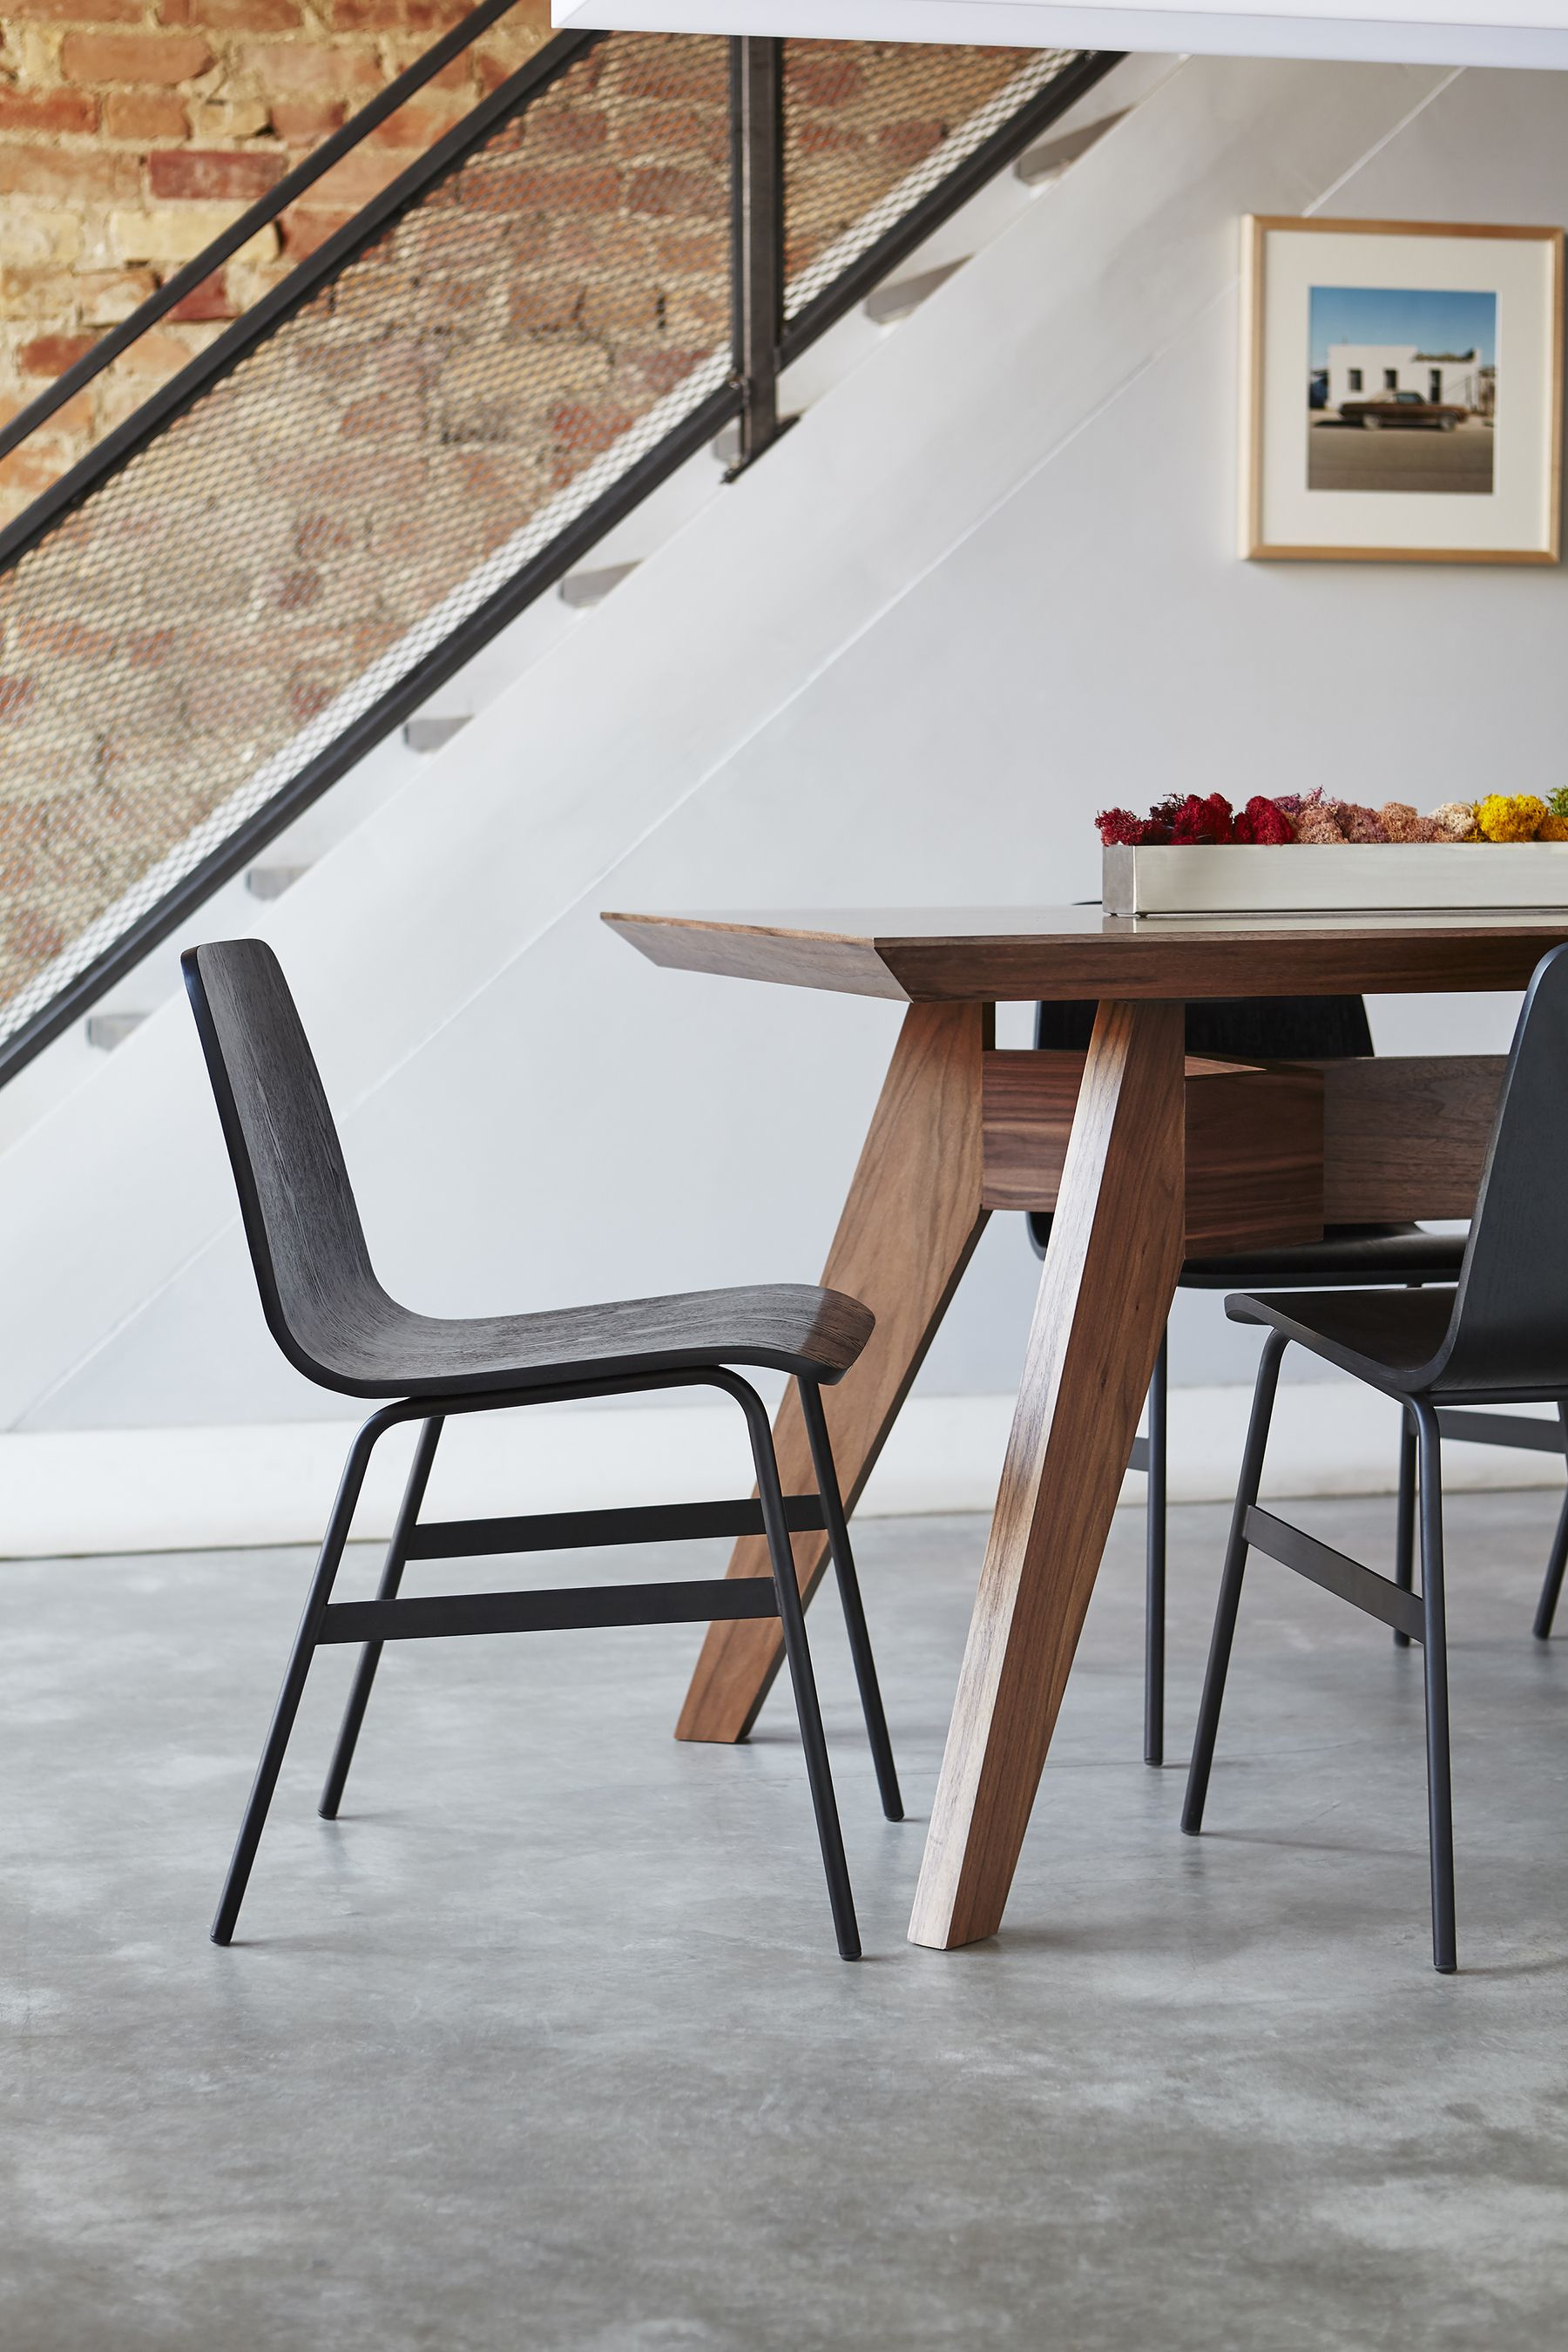 The Lecture Chair Is A Modern Reinterpretation Of A Classic